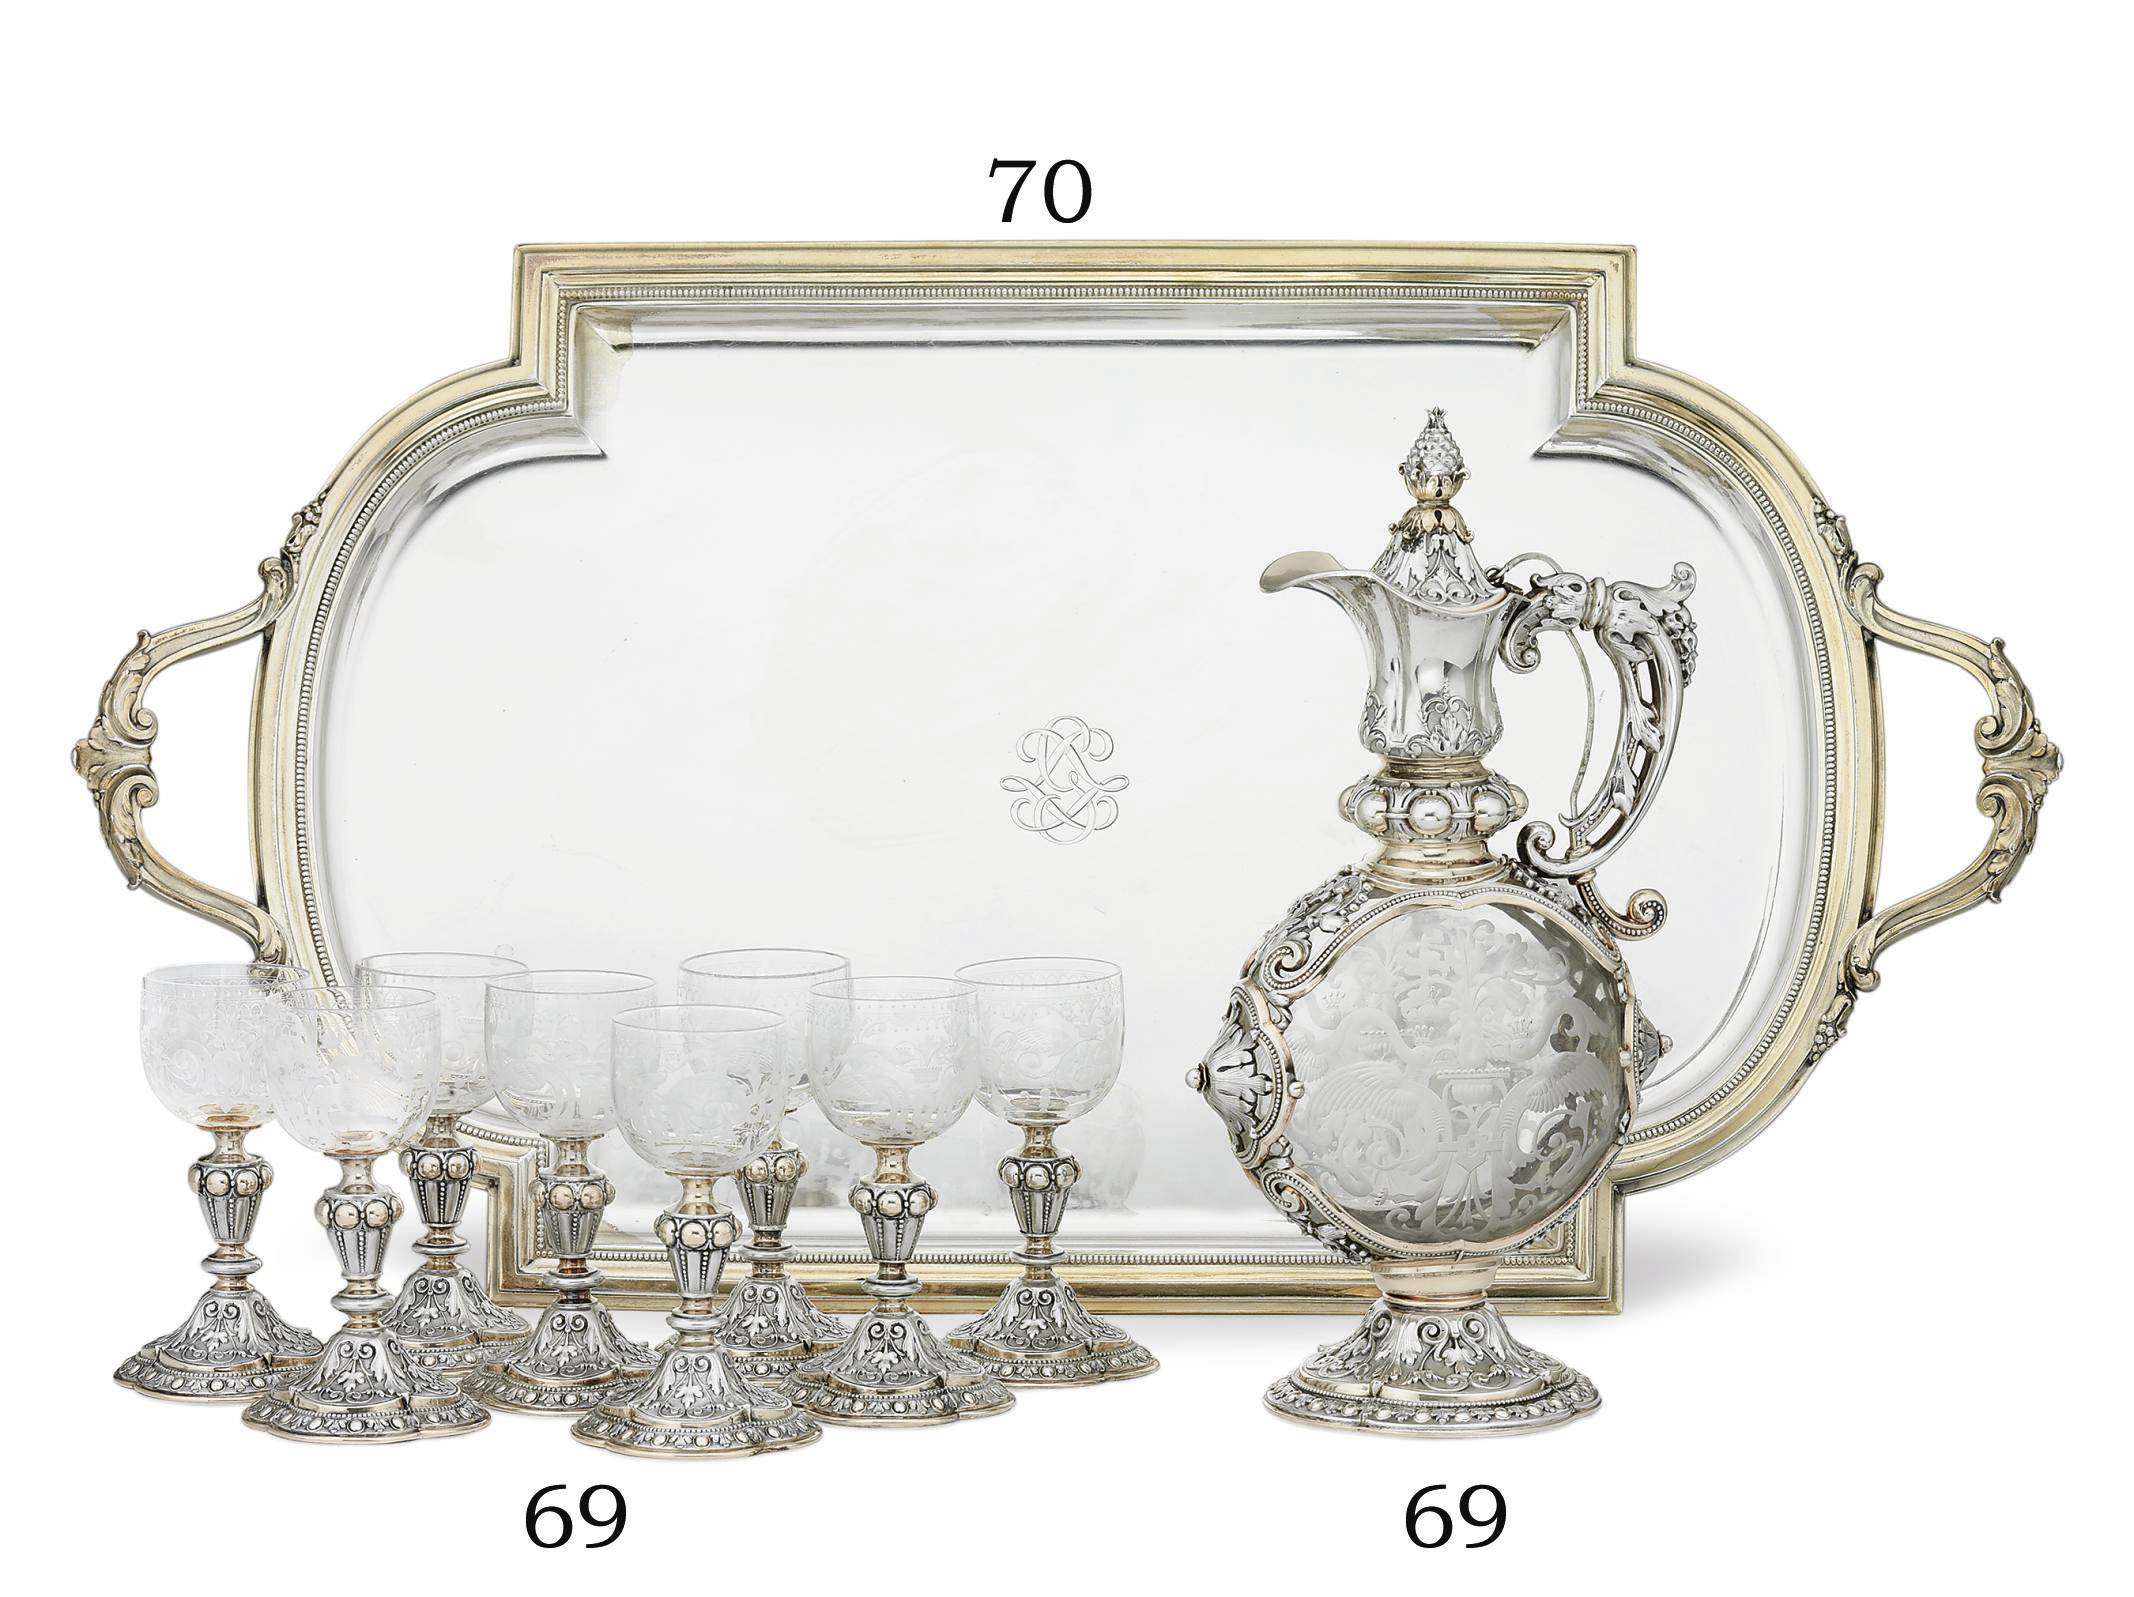 A FRENCH PARCEL-GILT SILVER TW